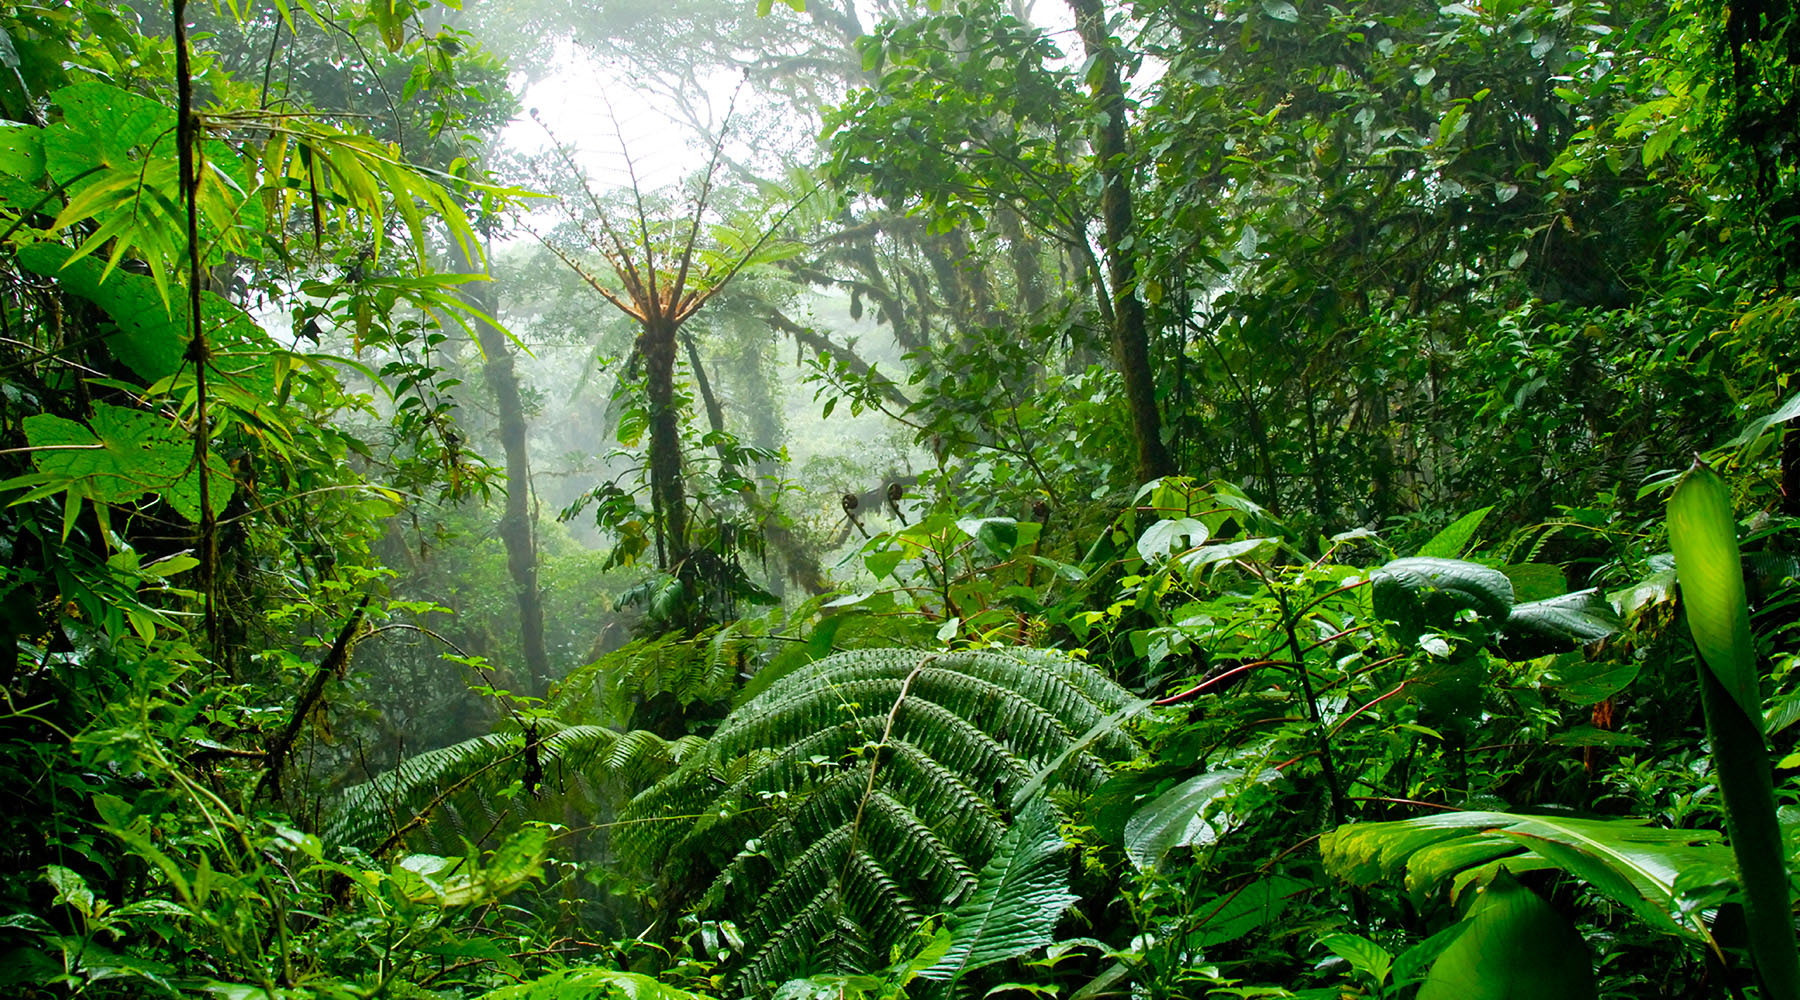 Just outside Puntarenas, the Monteverde Cloud Forest is home to over 100 species of mammals, 400 species of birds, and 2,500 species of plants.